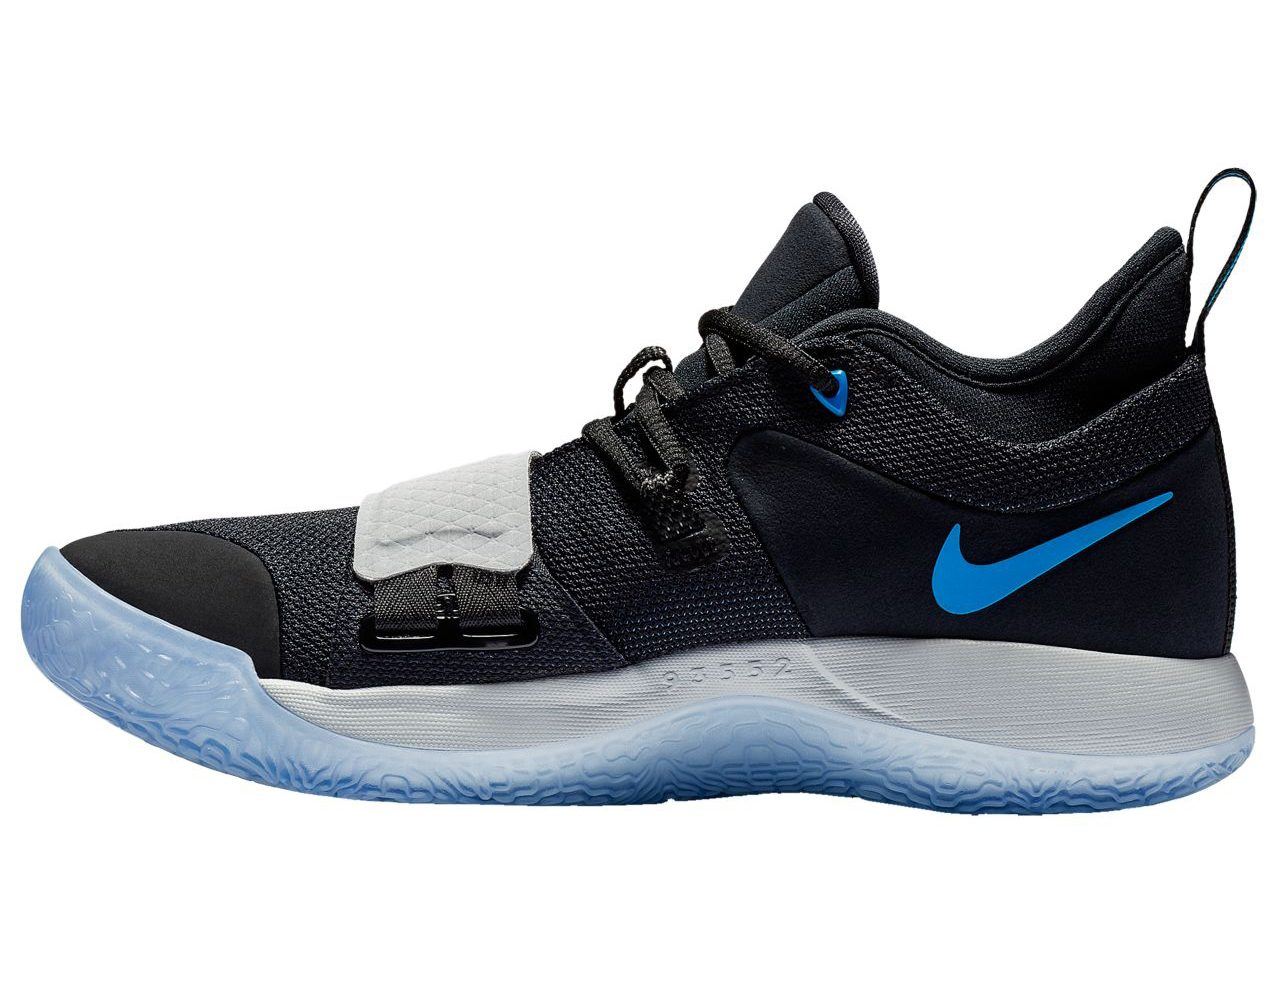 nike pg 2.5 photo blue release date